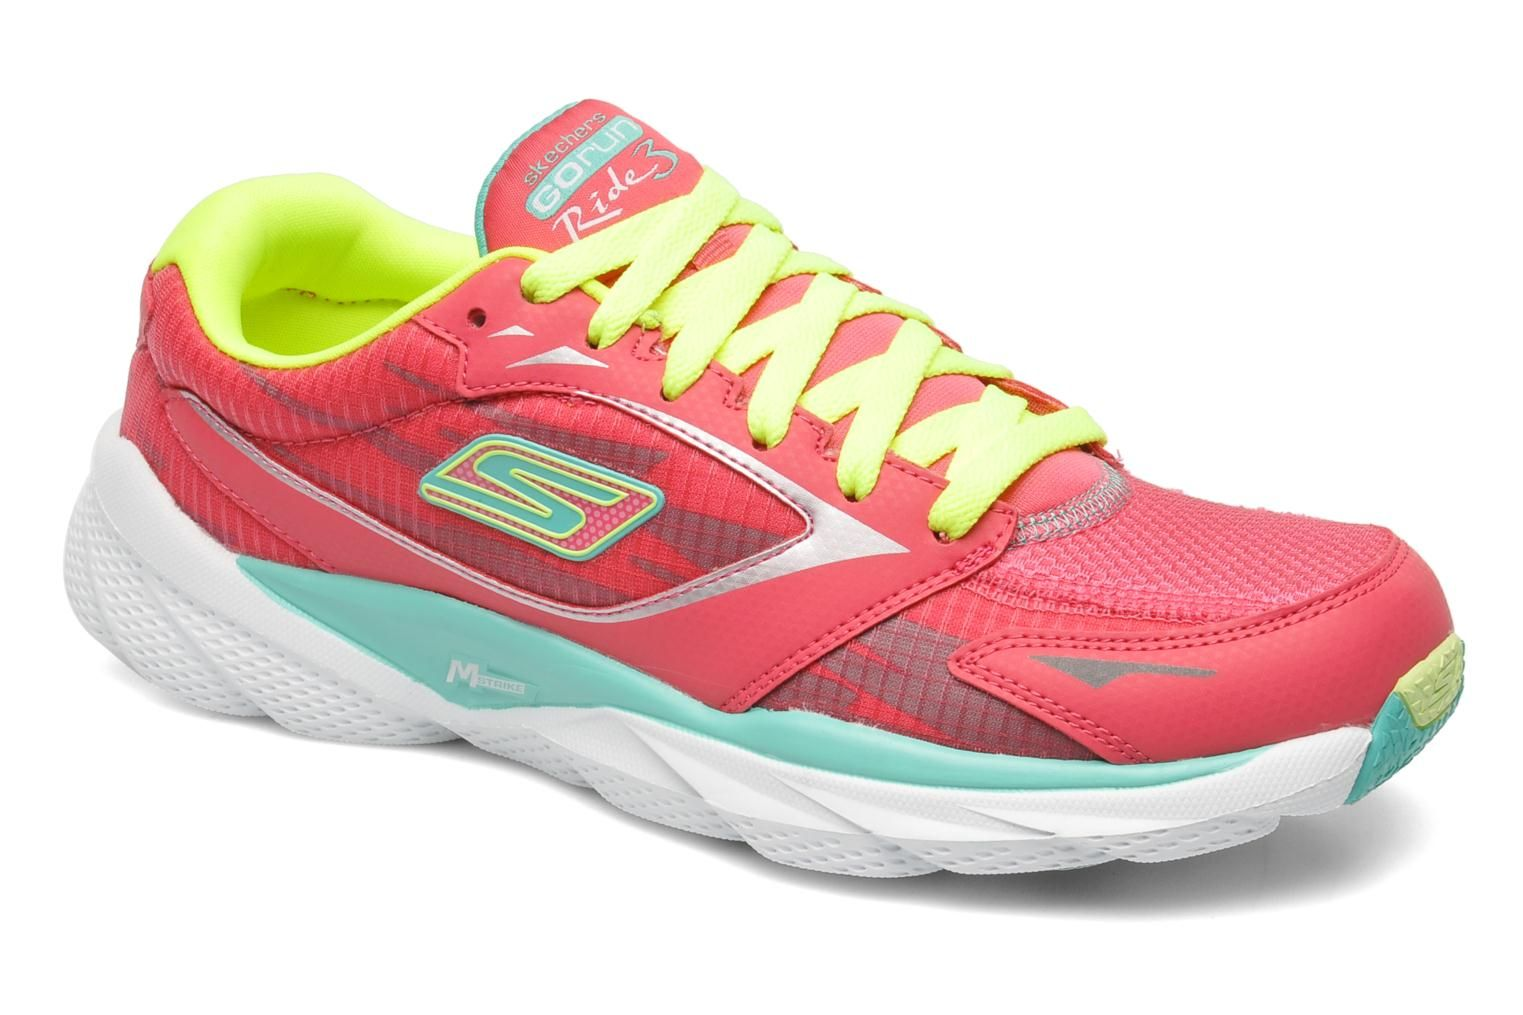 Skechers Go Run Ride 3 13910 Sport Shoes In Pink At Sarenza Co Uk